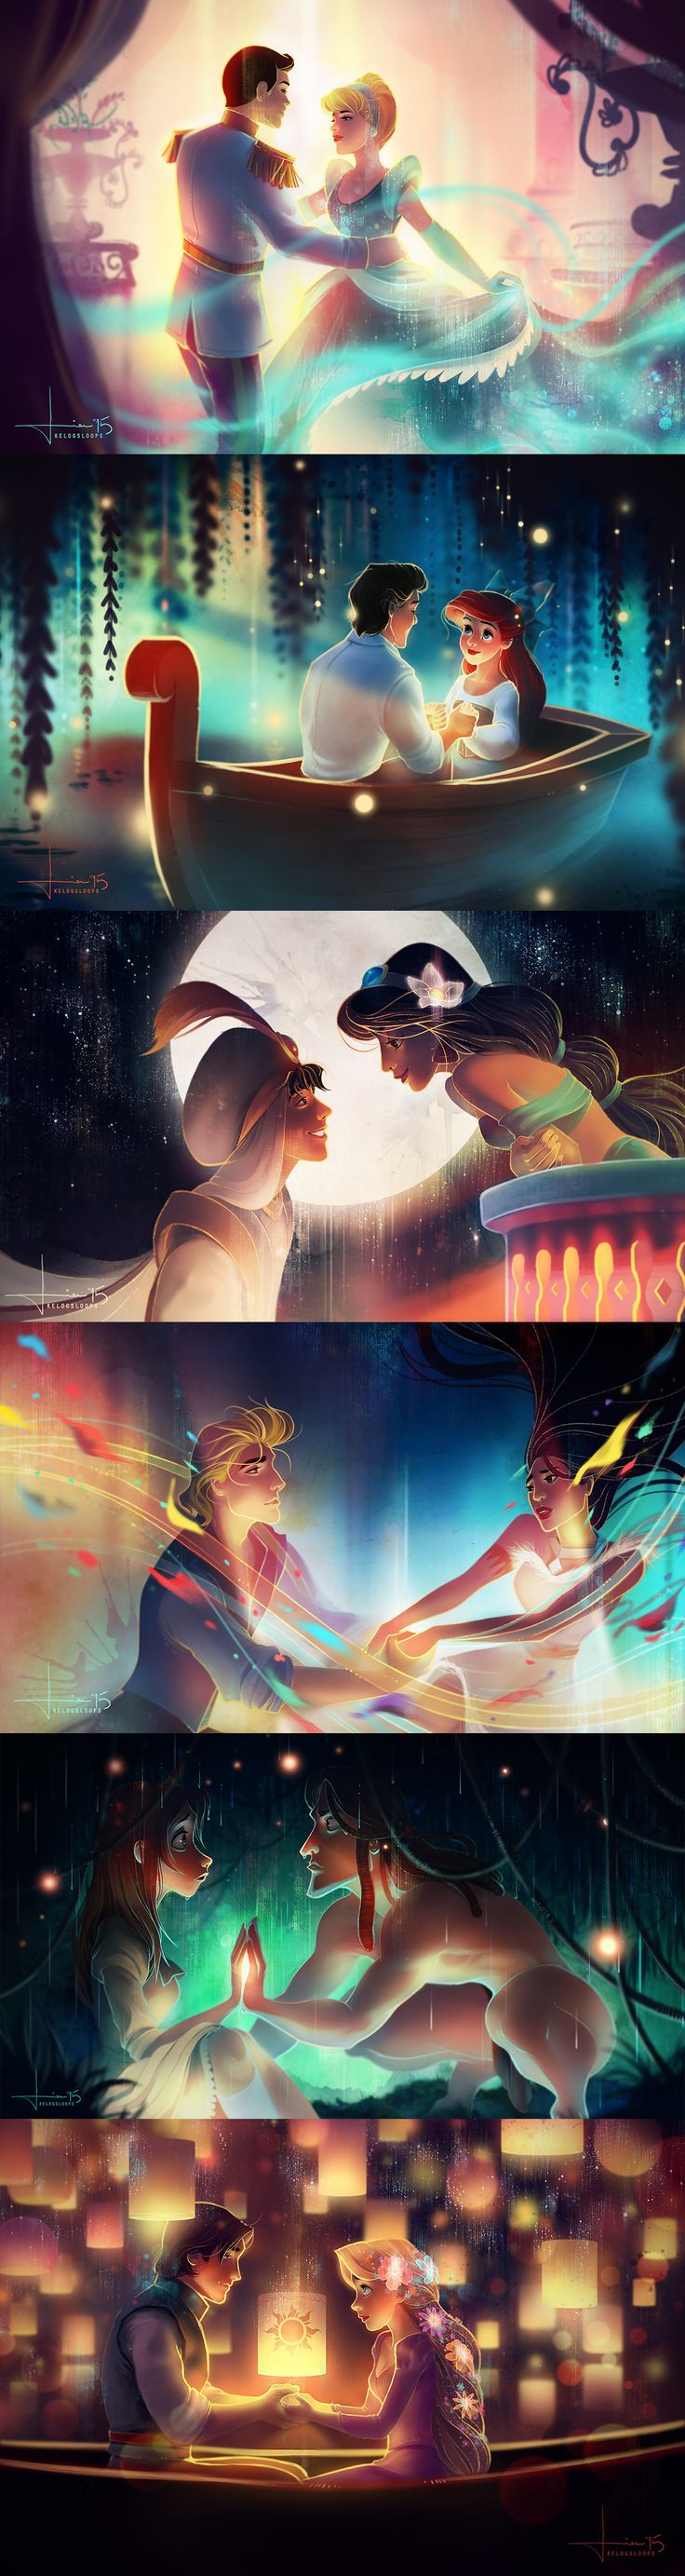 "Cinderella (A Dream is a Wish (but really it's So This is Love)), Eric and Ariel (The Little Mermaid: Part of Your World/ Kiss the Girl), Aladdin and Jasmine (A Whole New World), John and Pocahontas (Colours of the Wind), Jane and Tarzan (Two Worlds), Flynn Rider / Eugene and Rapunzel (Tangled: I See the Light) by Australian Artist ""kelogsloops"" on Deviant Art."